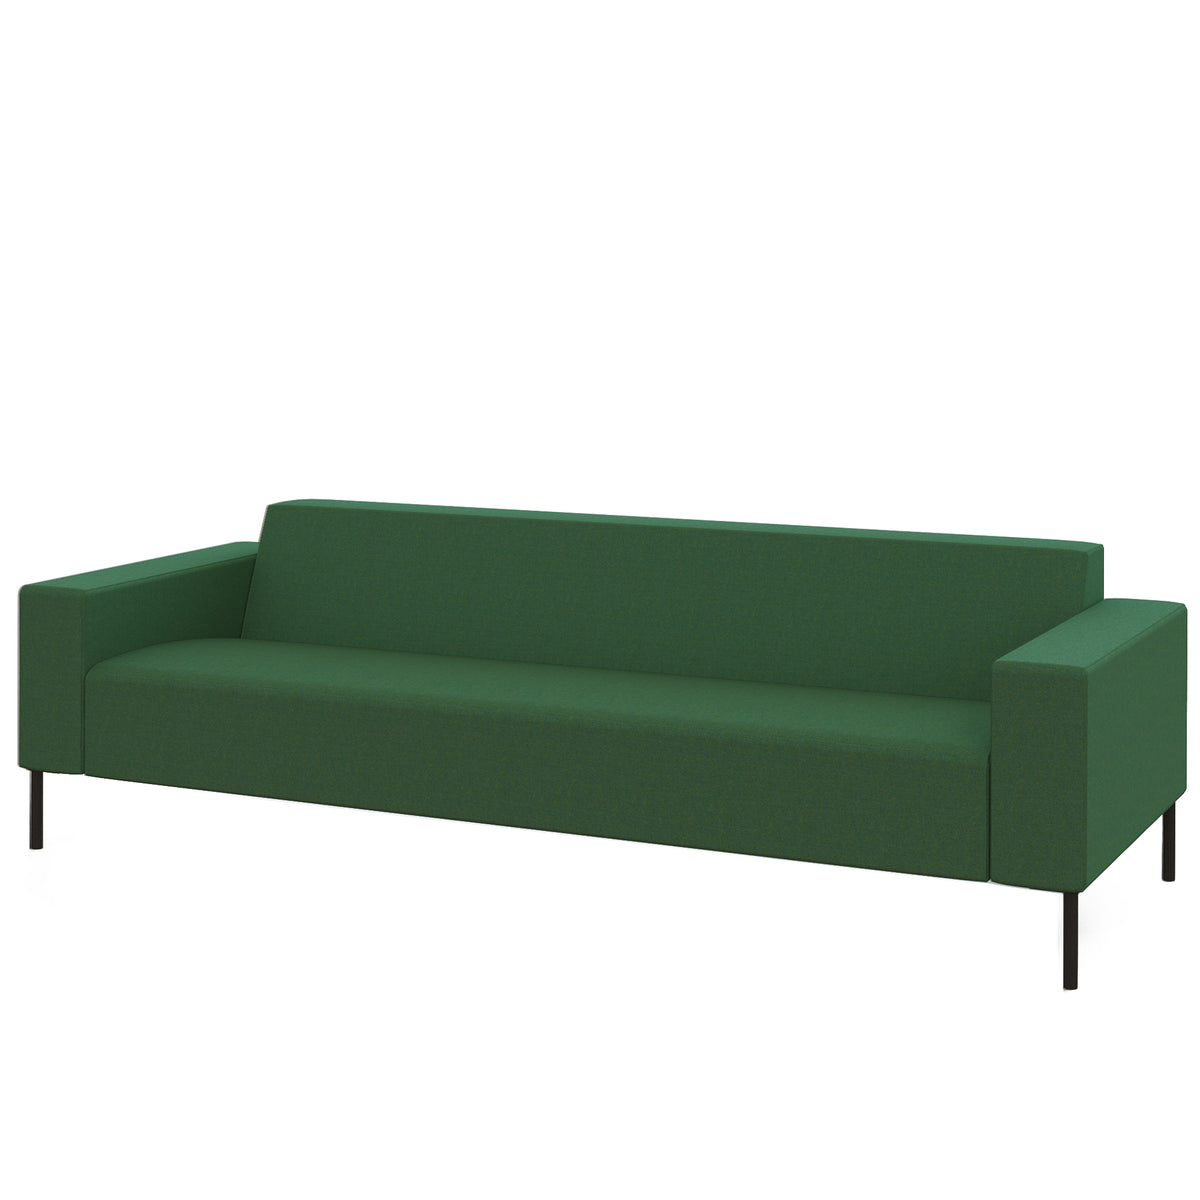 Hitch Mylius HM18 Origin Three Seat Sofa Black Legs Farringdon